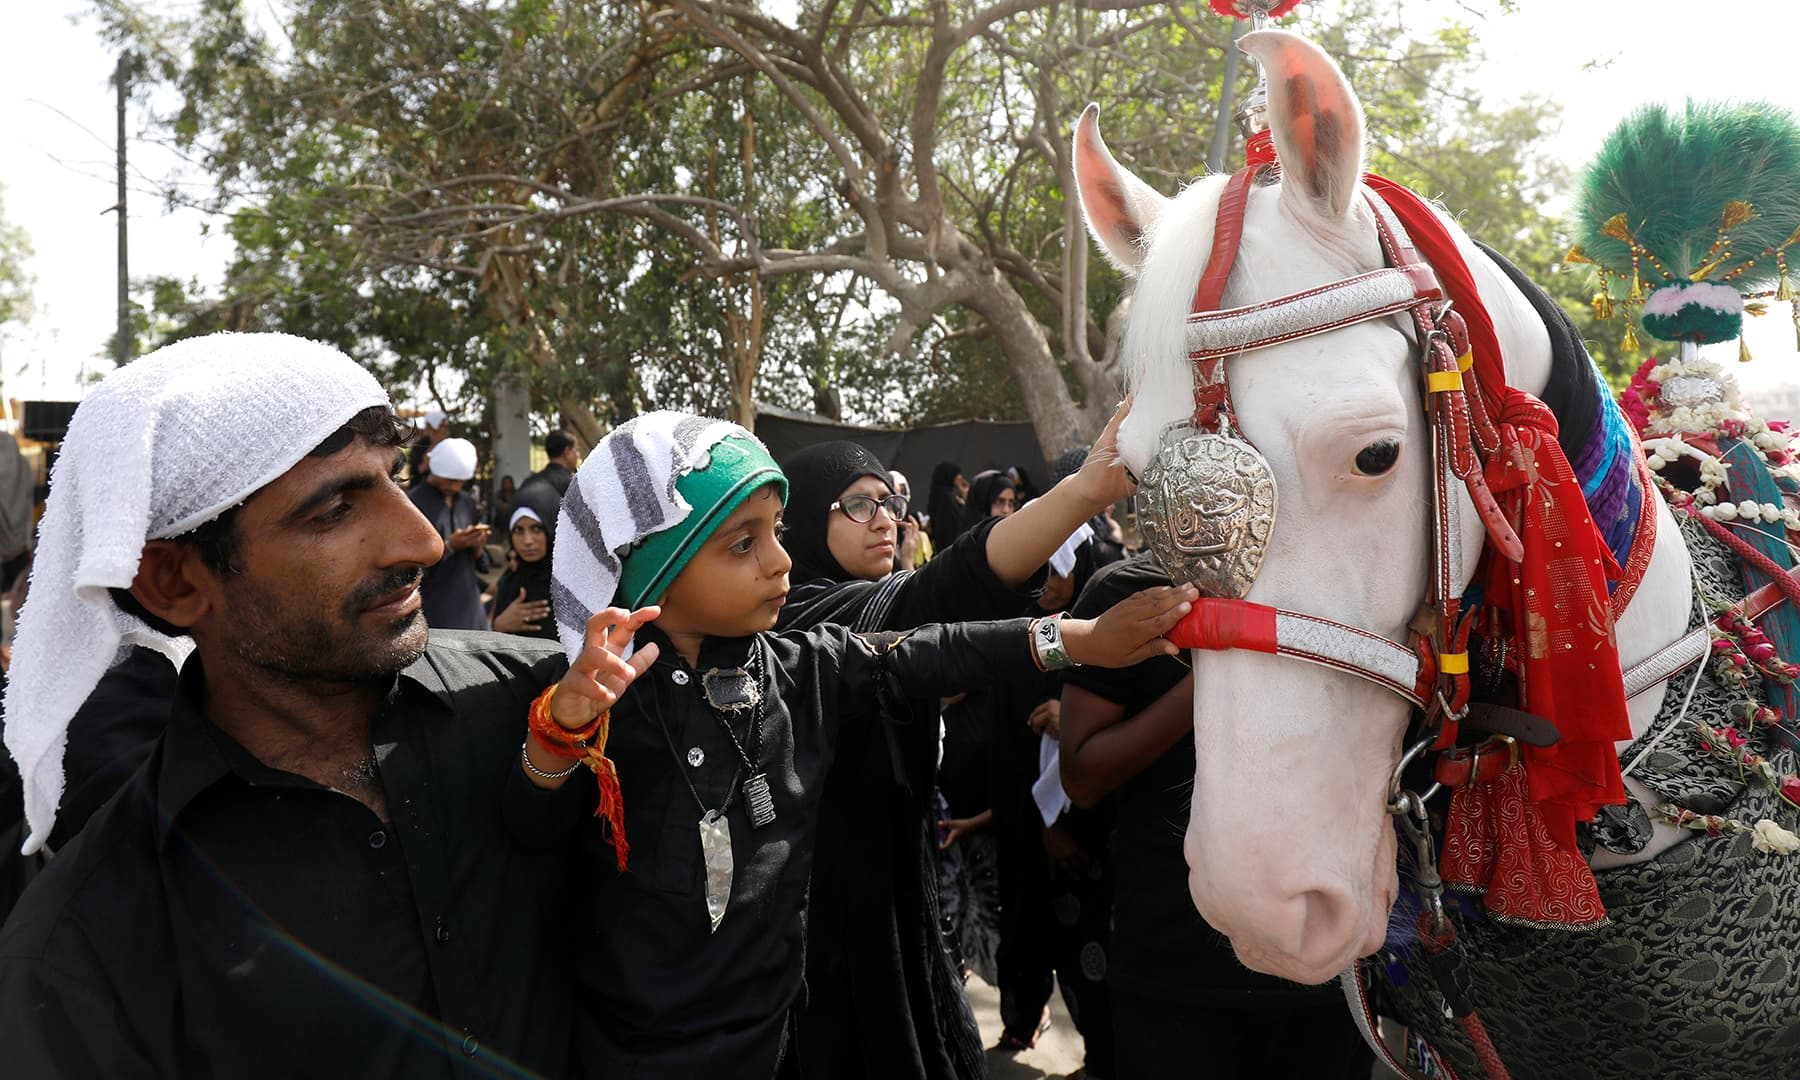 Shia Muslims reach out to touch the ornamentation placed on a symbolic sacred horse for good luck, during a religious procession of Youm-i-Ali in Karachi on Monday. — Reuters